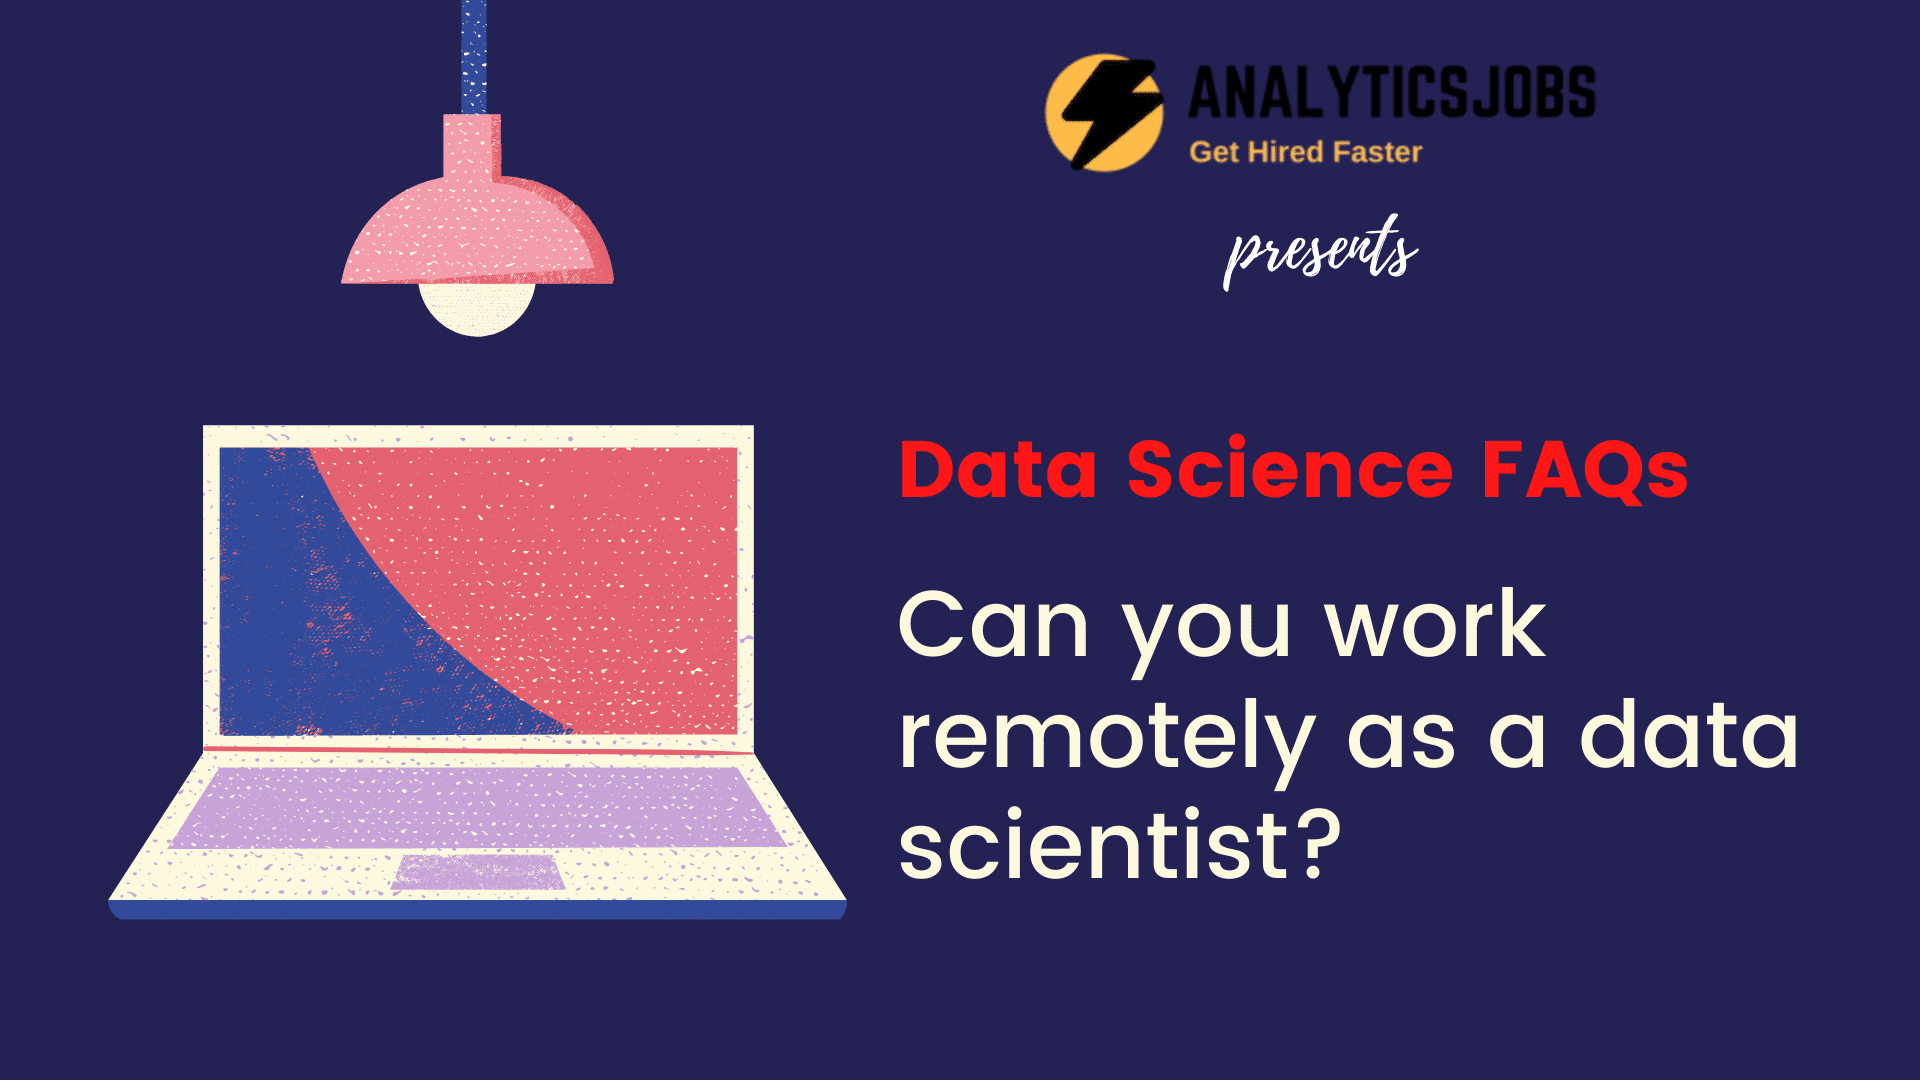 Can you work remotely as a data scientist?